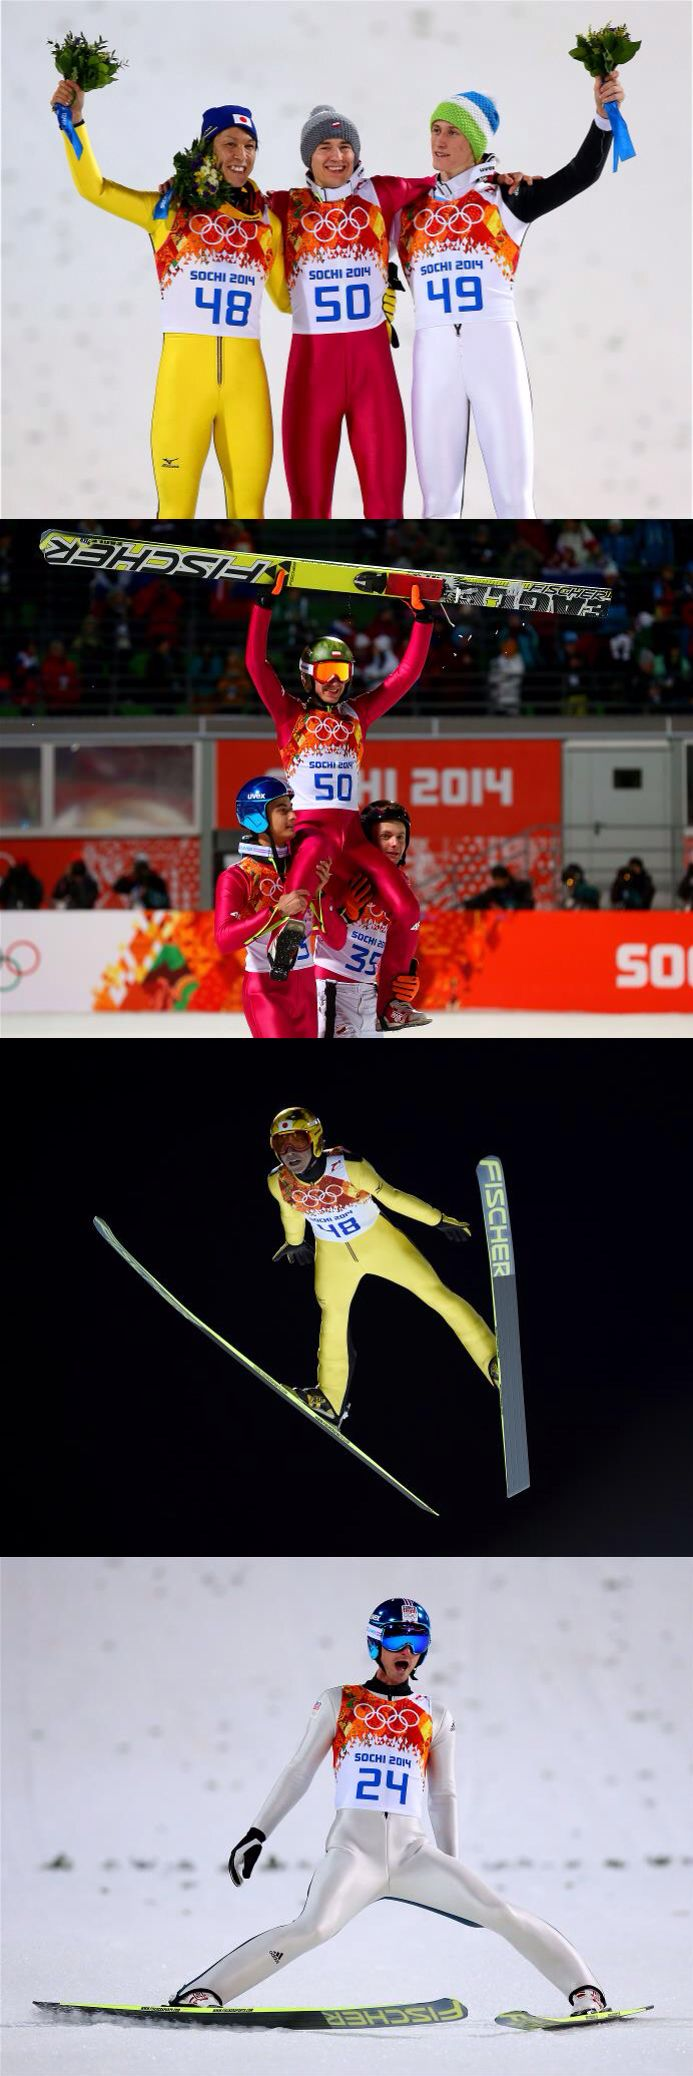 Ski Jumping Men's Large Hill Individual/ Silver medalist Noriaki Kasai (L) of Japan, gold medalist Kamil Stoch (C) of Poland and bronze medalist Peter Prevc (R) of Slovenia celebrate on the podium during the flower ceremony after the Men's Large Hill Individual Final Round on day 9 of the Sochi 2014 Winter Olympics at the RusSki Gorki Ski Jumping Center